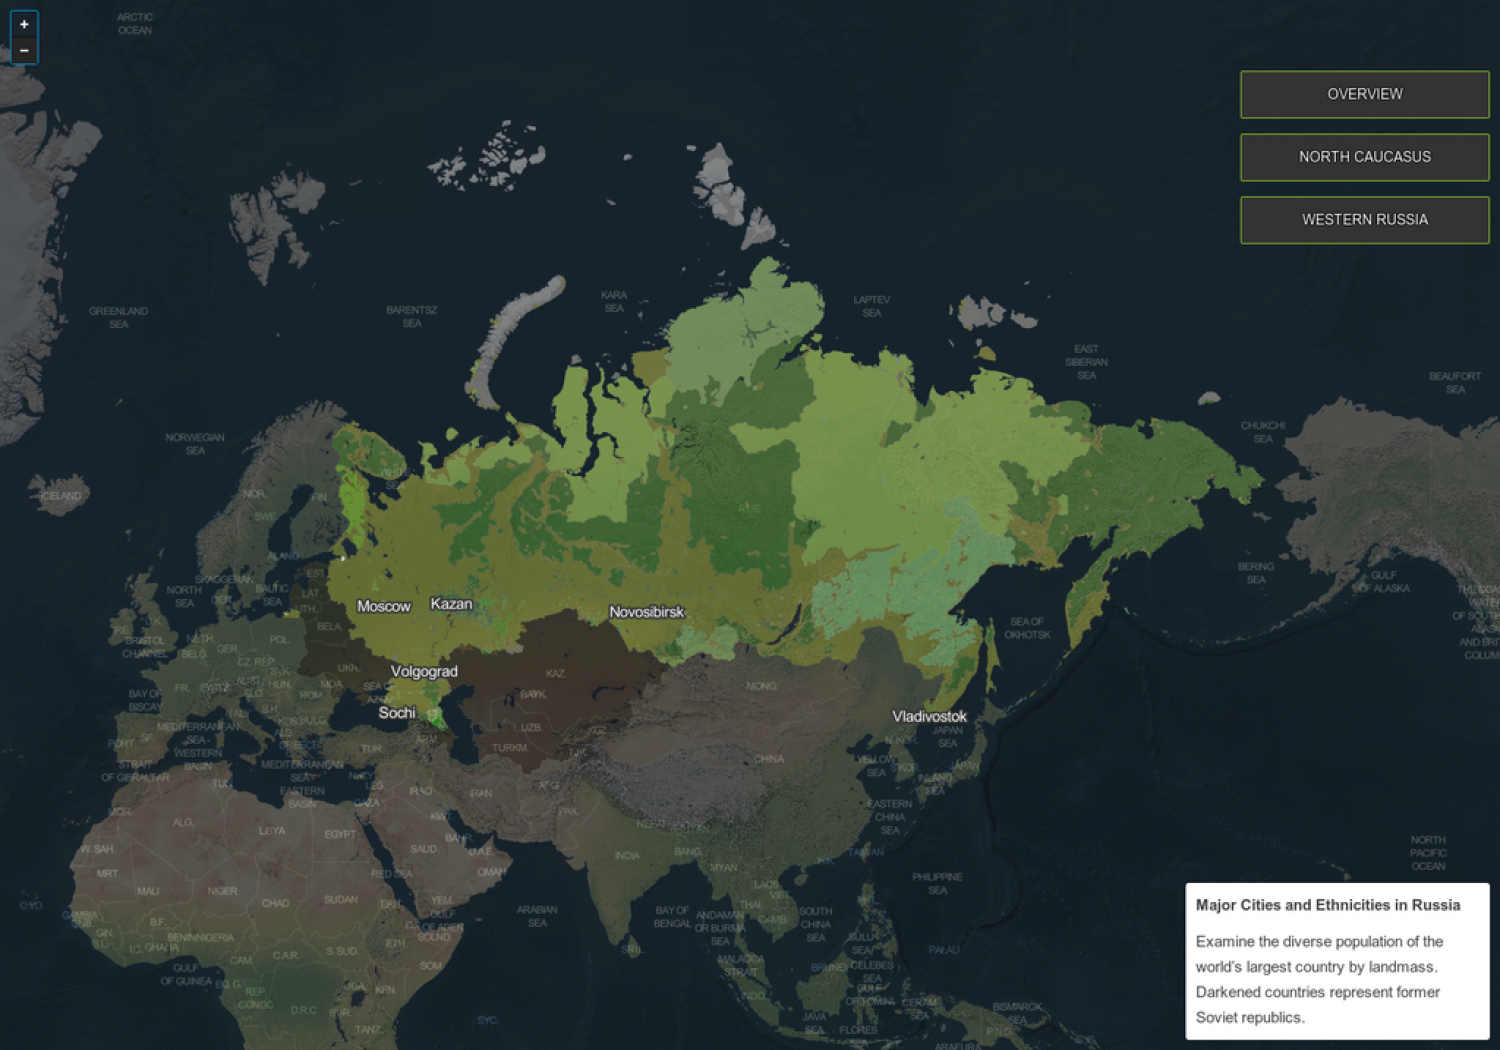 Russia ethnicities and major cities map Infographic